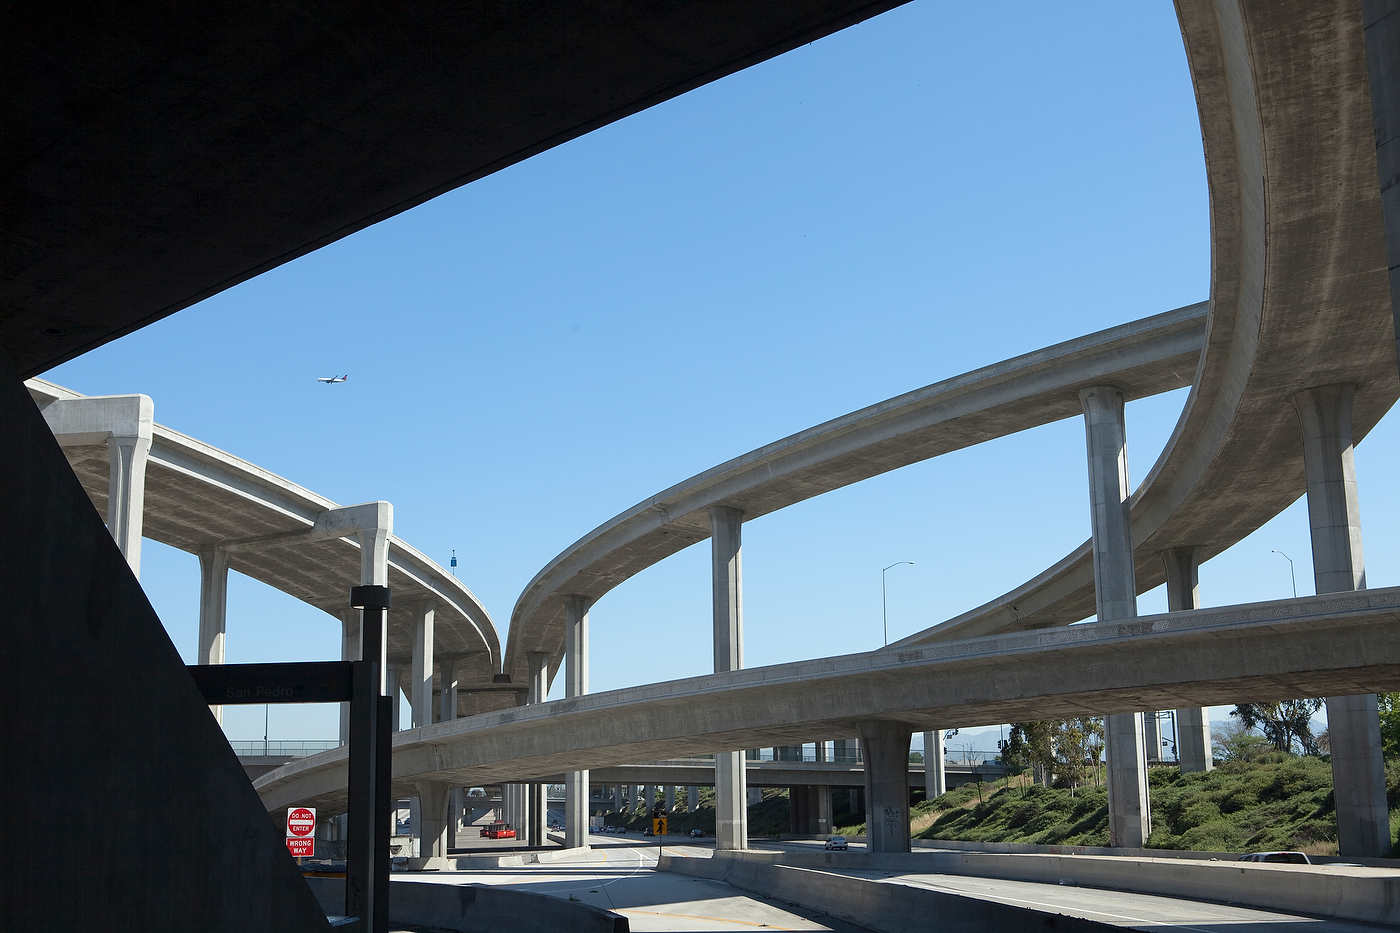 Freeways, Metro Silver Line.